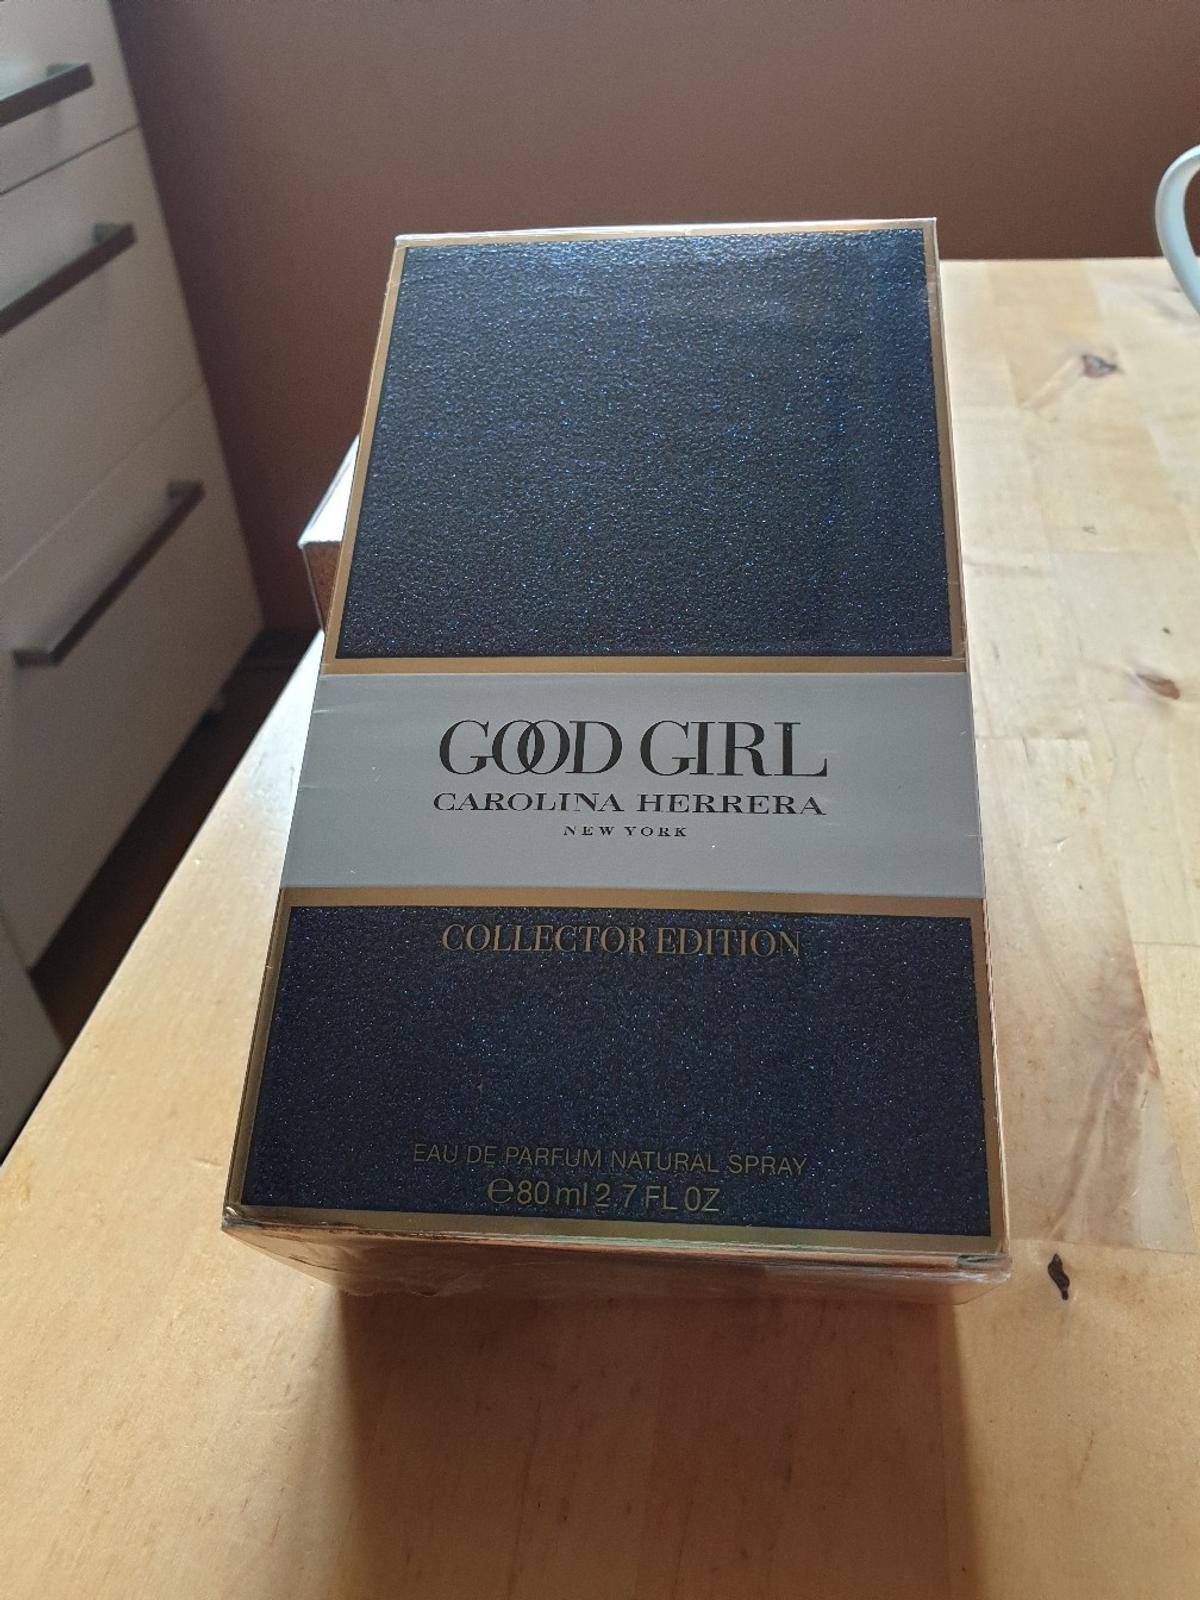 Good Girl 80 Ml Neu Und Verpackt In 22111 Horn For 8000 For Sale